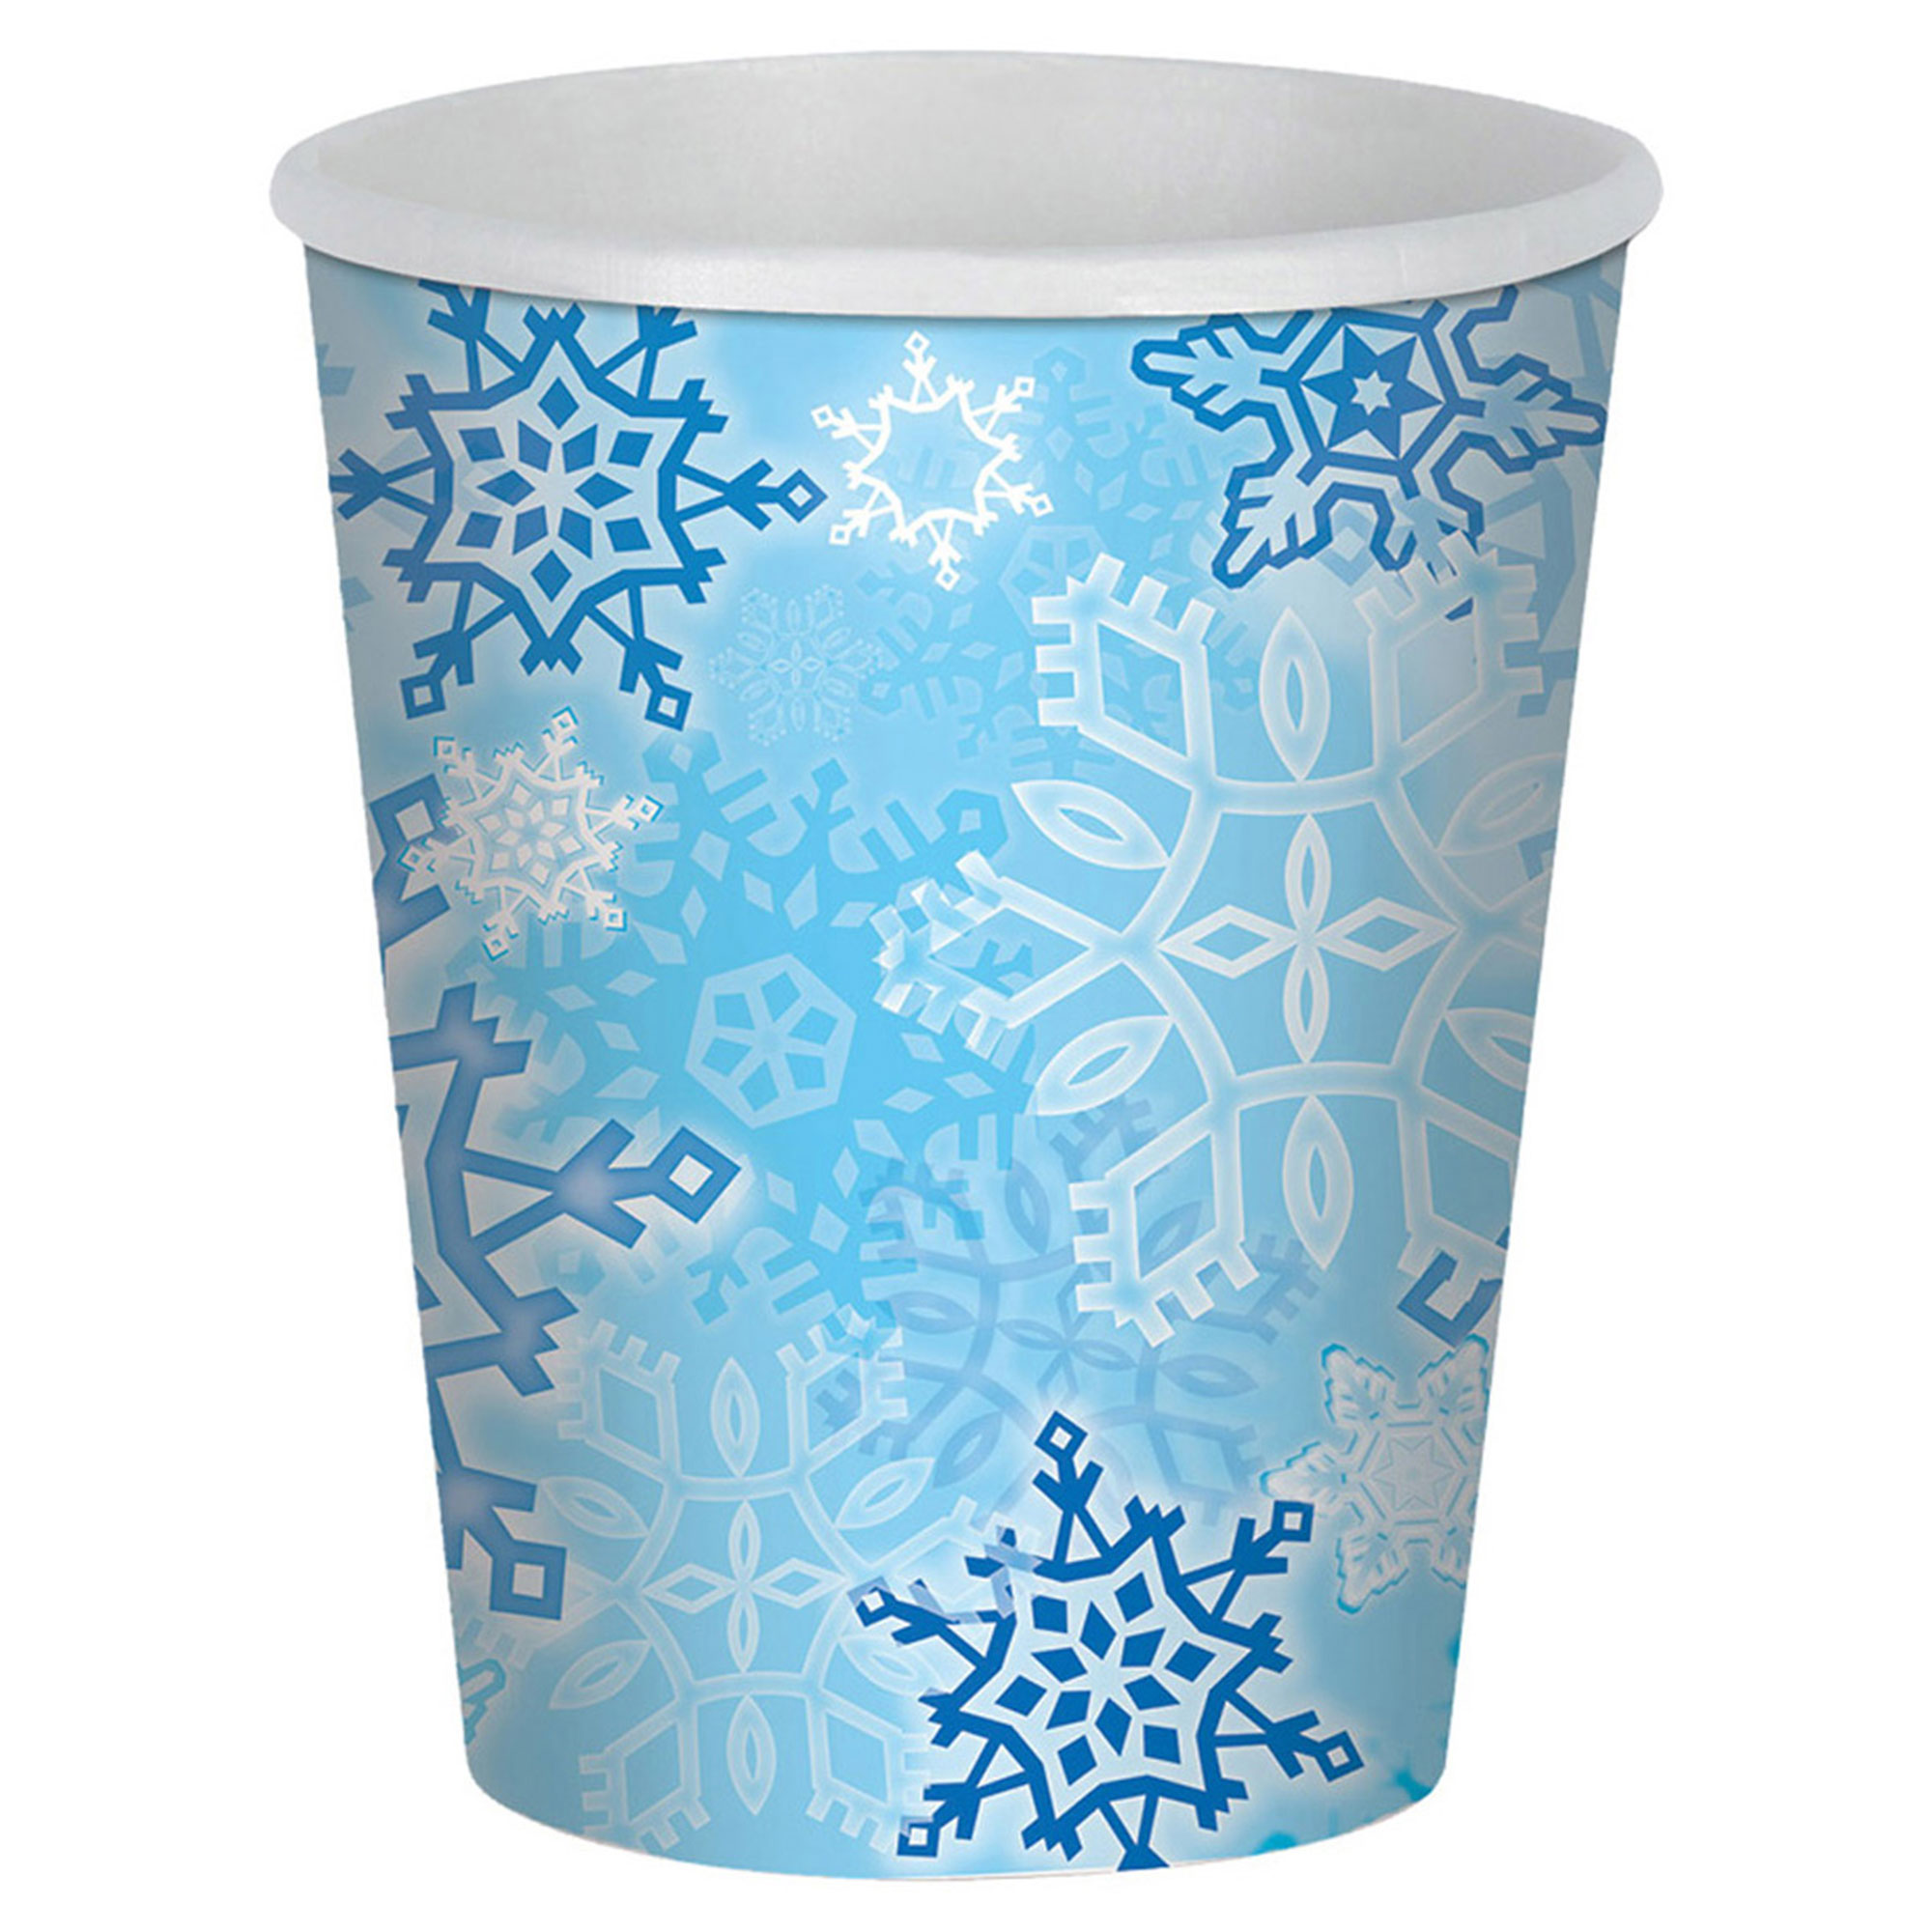 Morris Costumes Party Supplies Christmas Snowflake Beverage Cups, Style BG20939